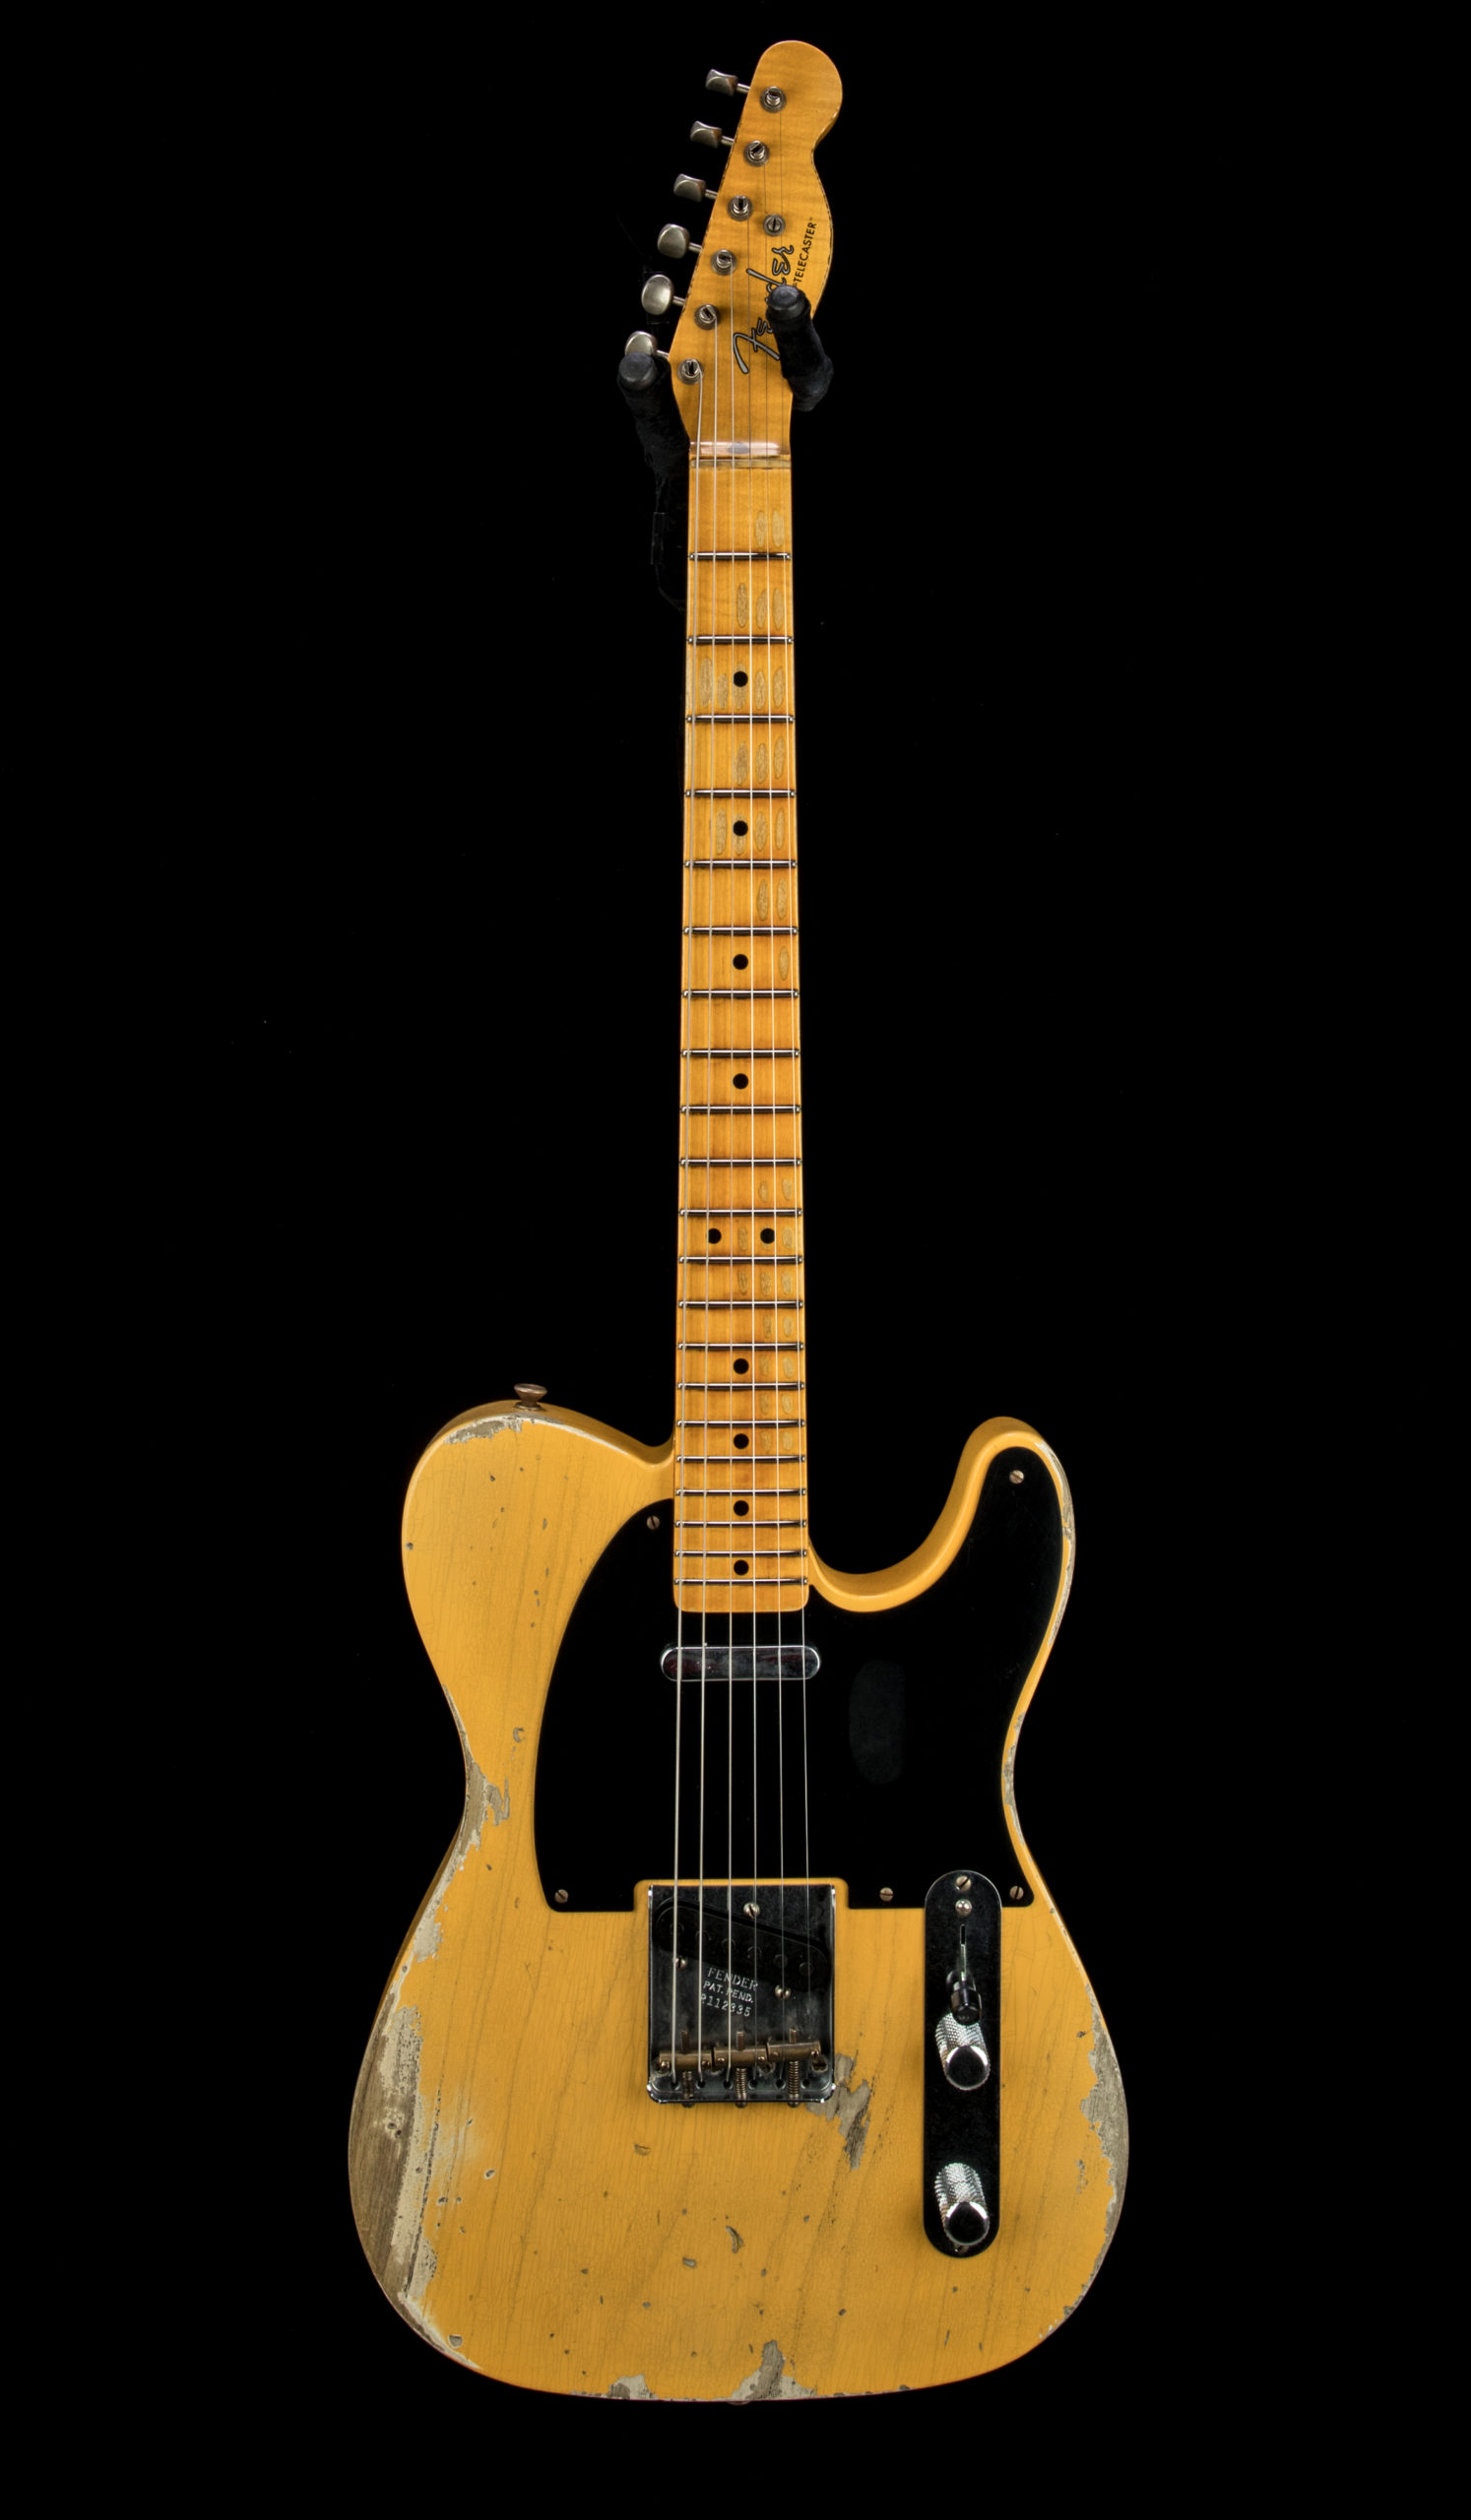 Fender Custom Shop B1 LTD 1951 Tele Heavy Rel #R112335 Front